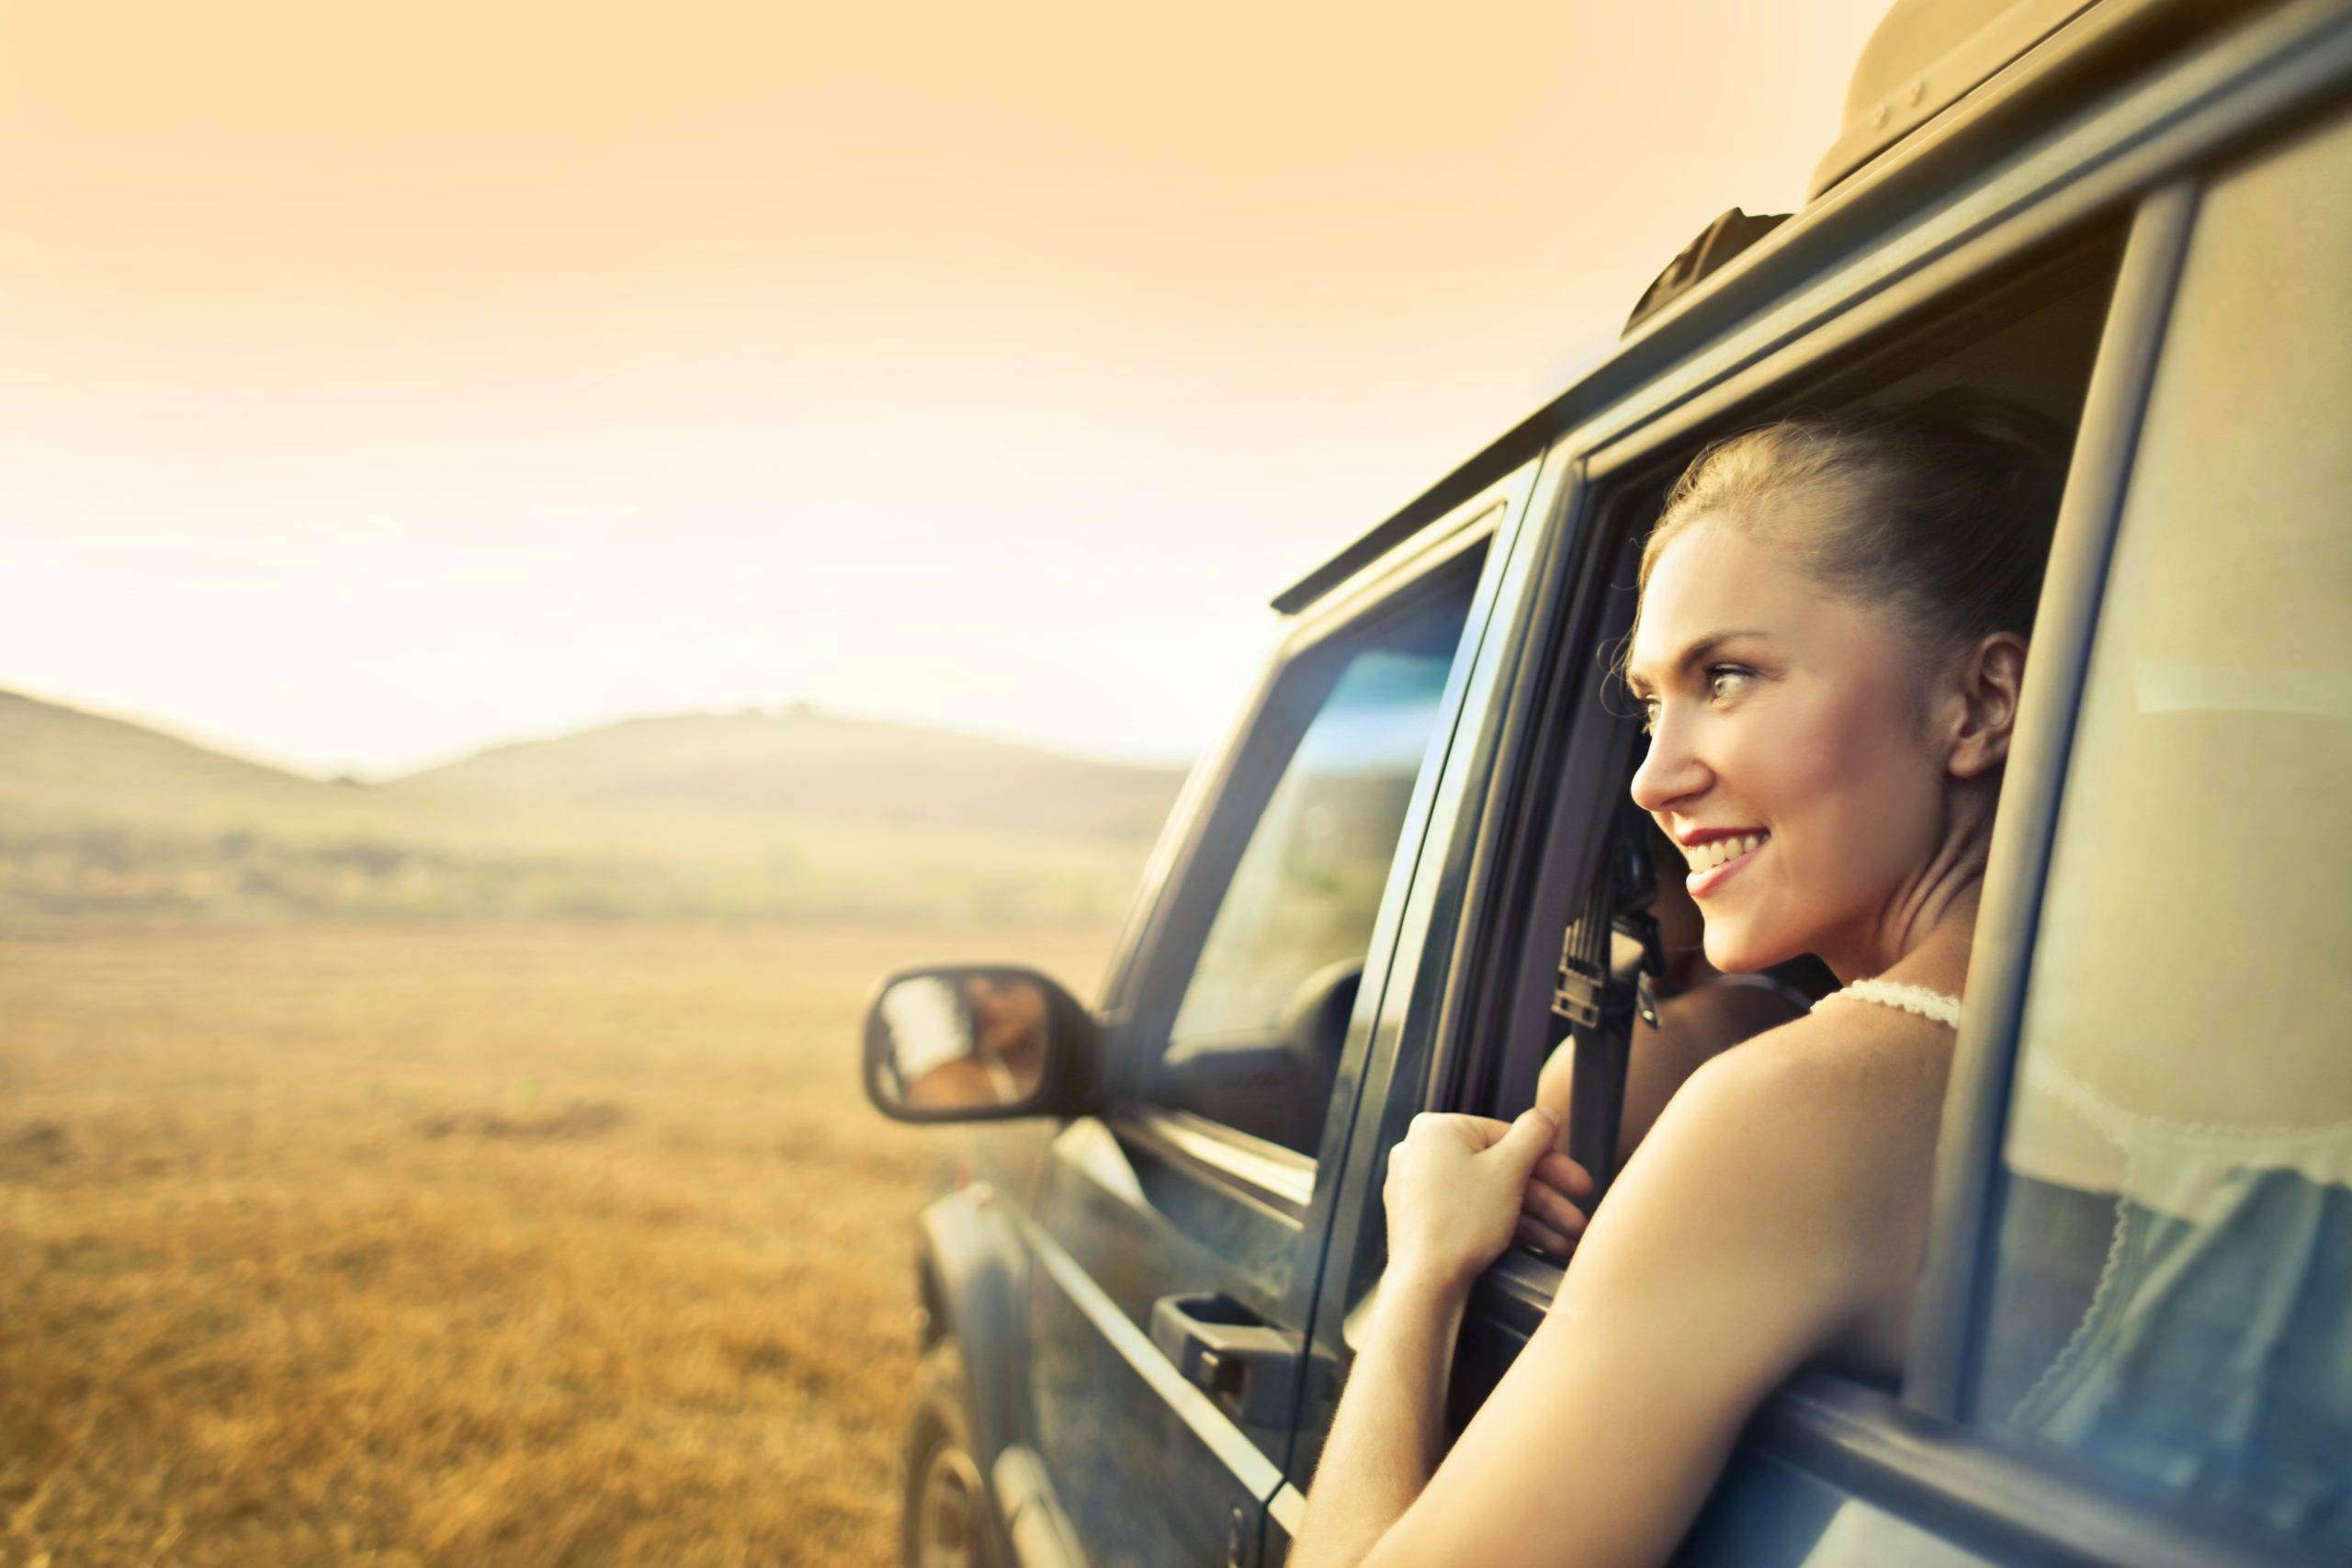 Woman staring out the window of a car